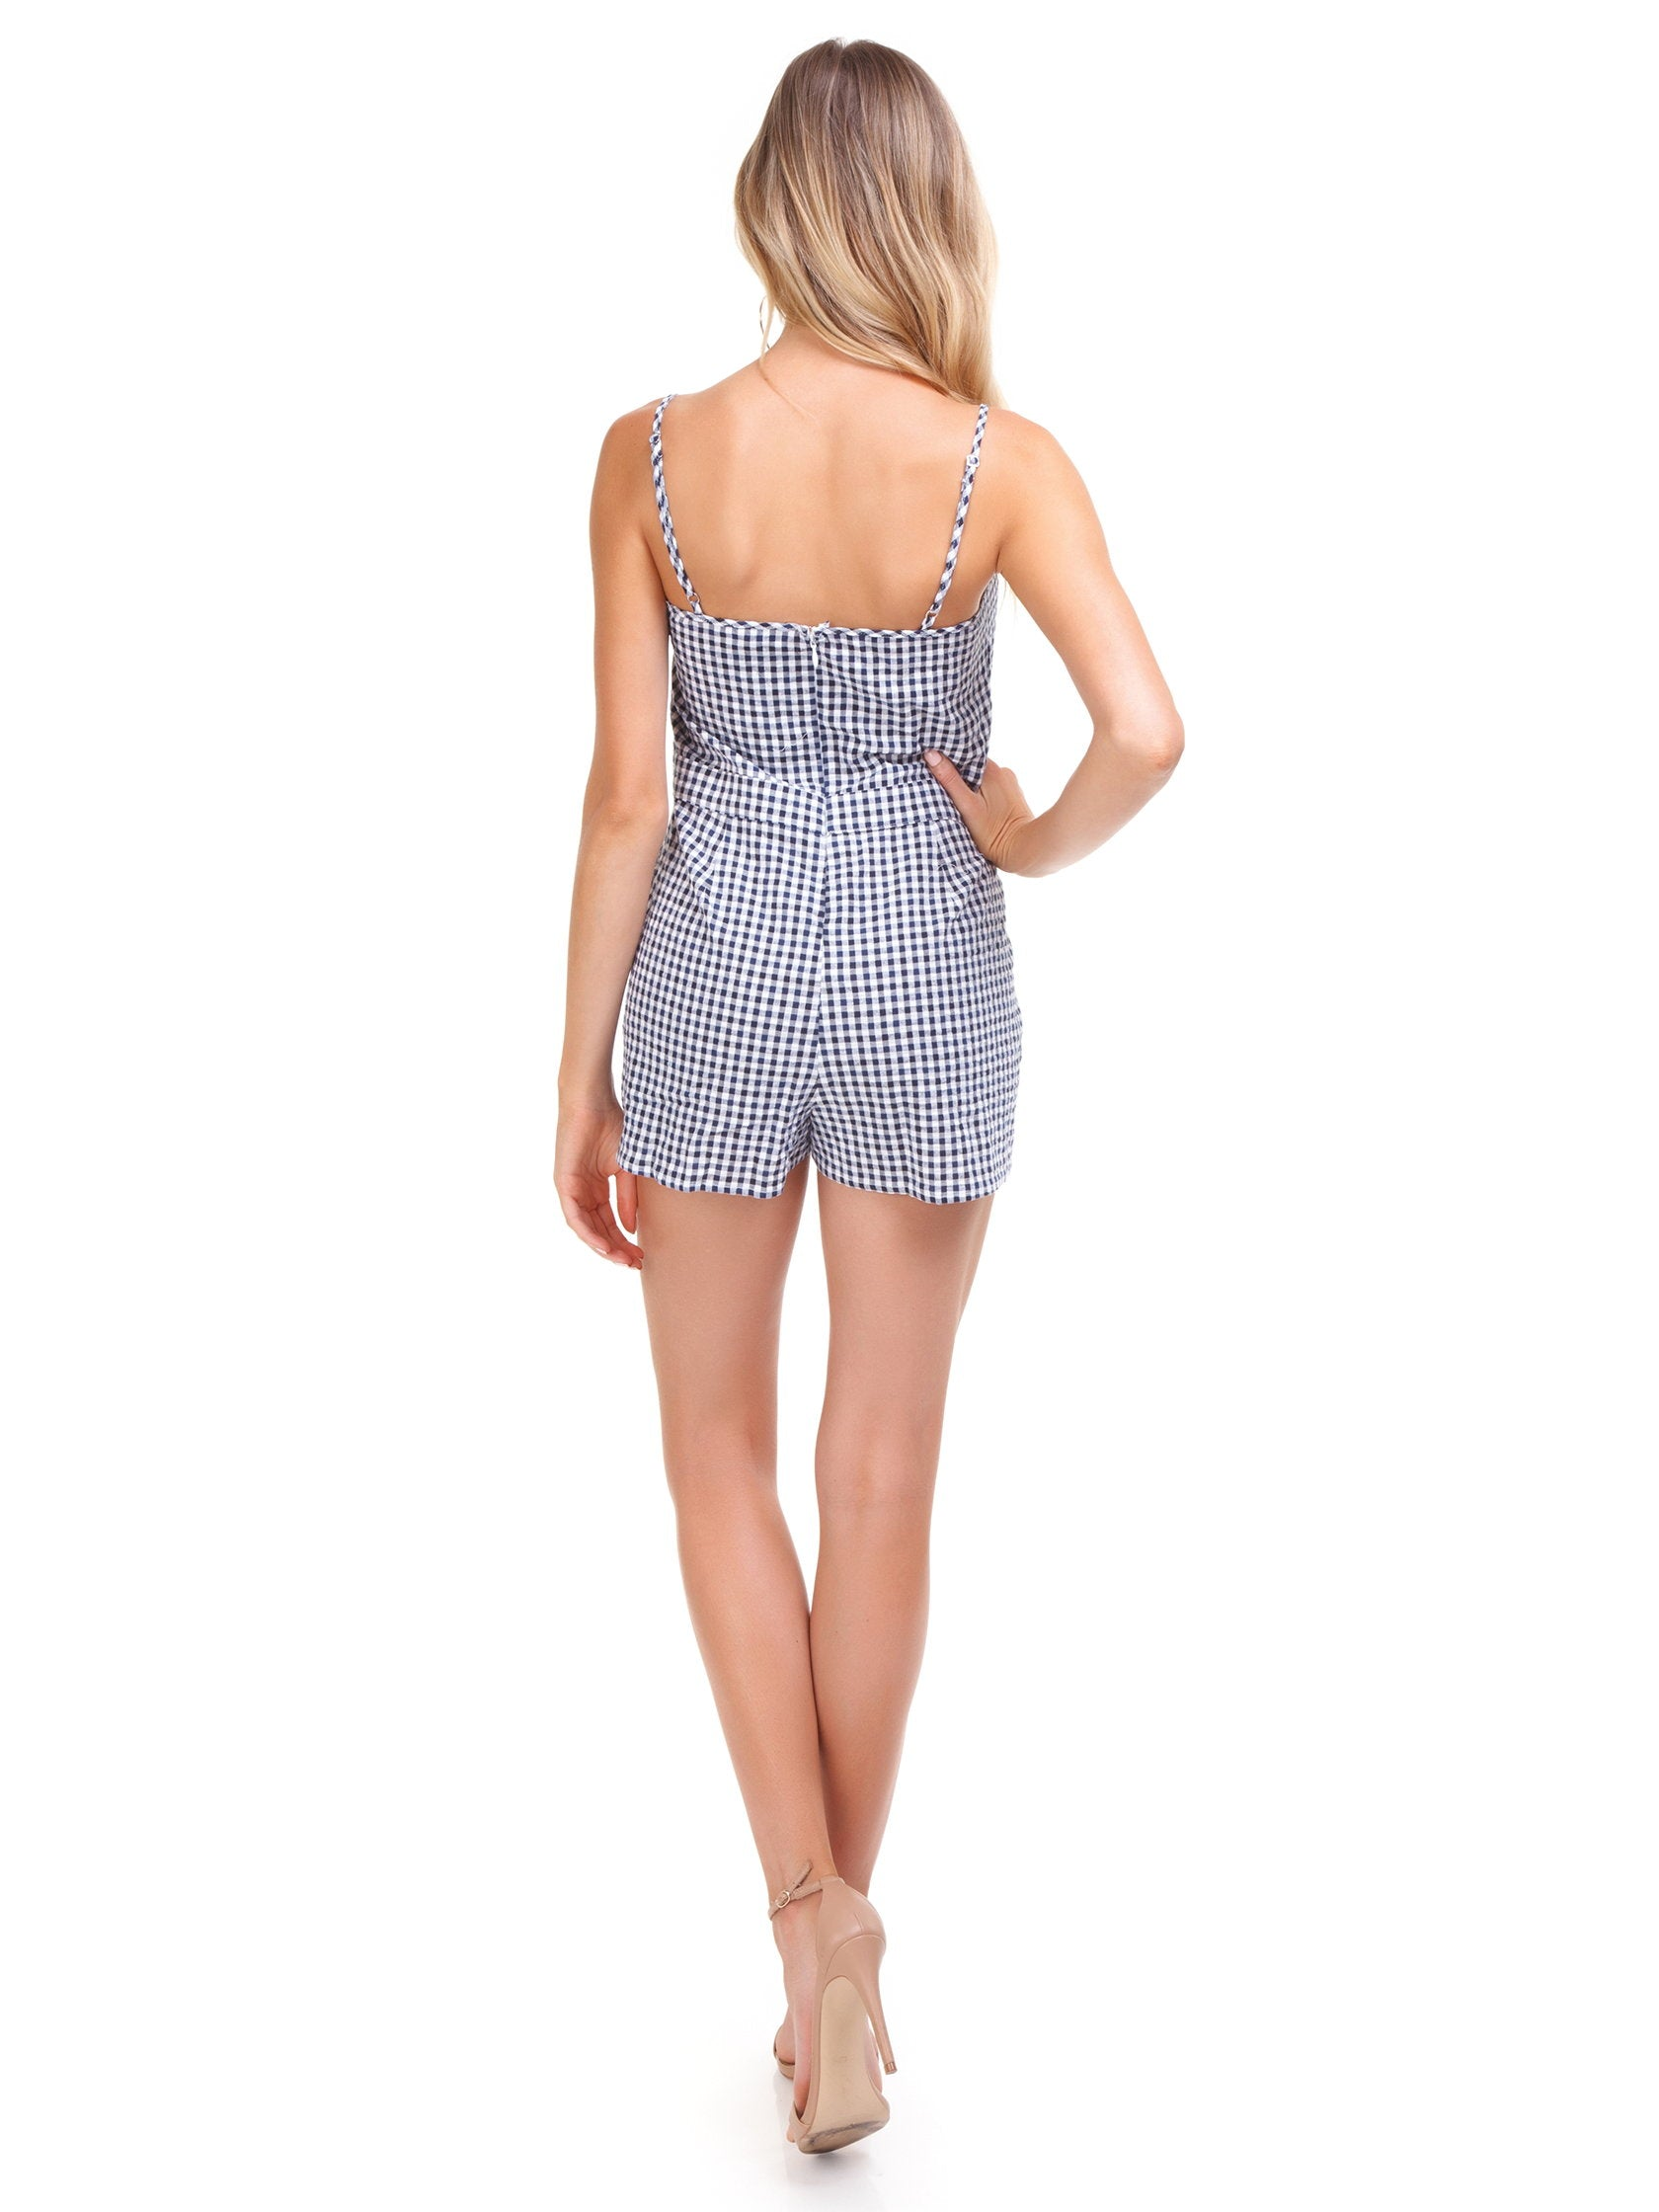 Women wearing a romper rental from Blue Life called Tied Up Romper